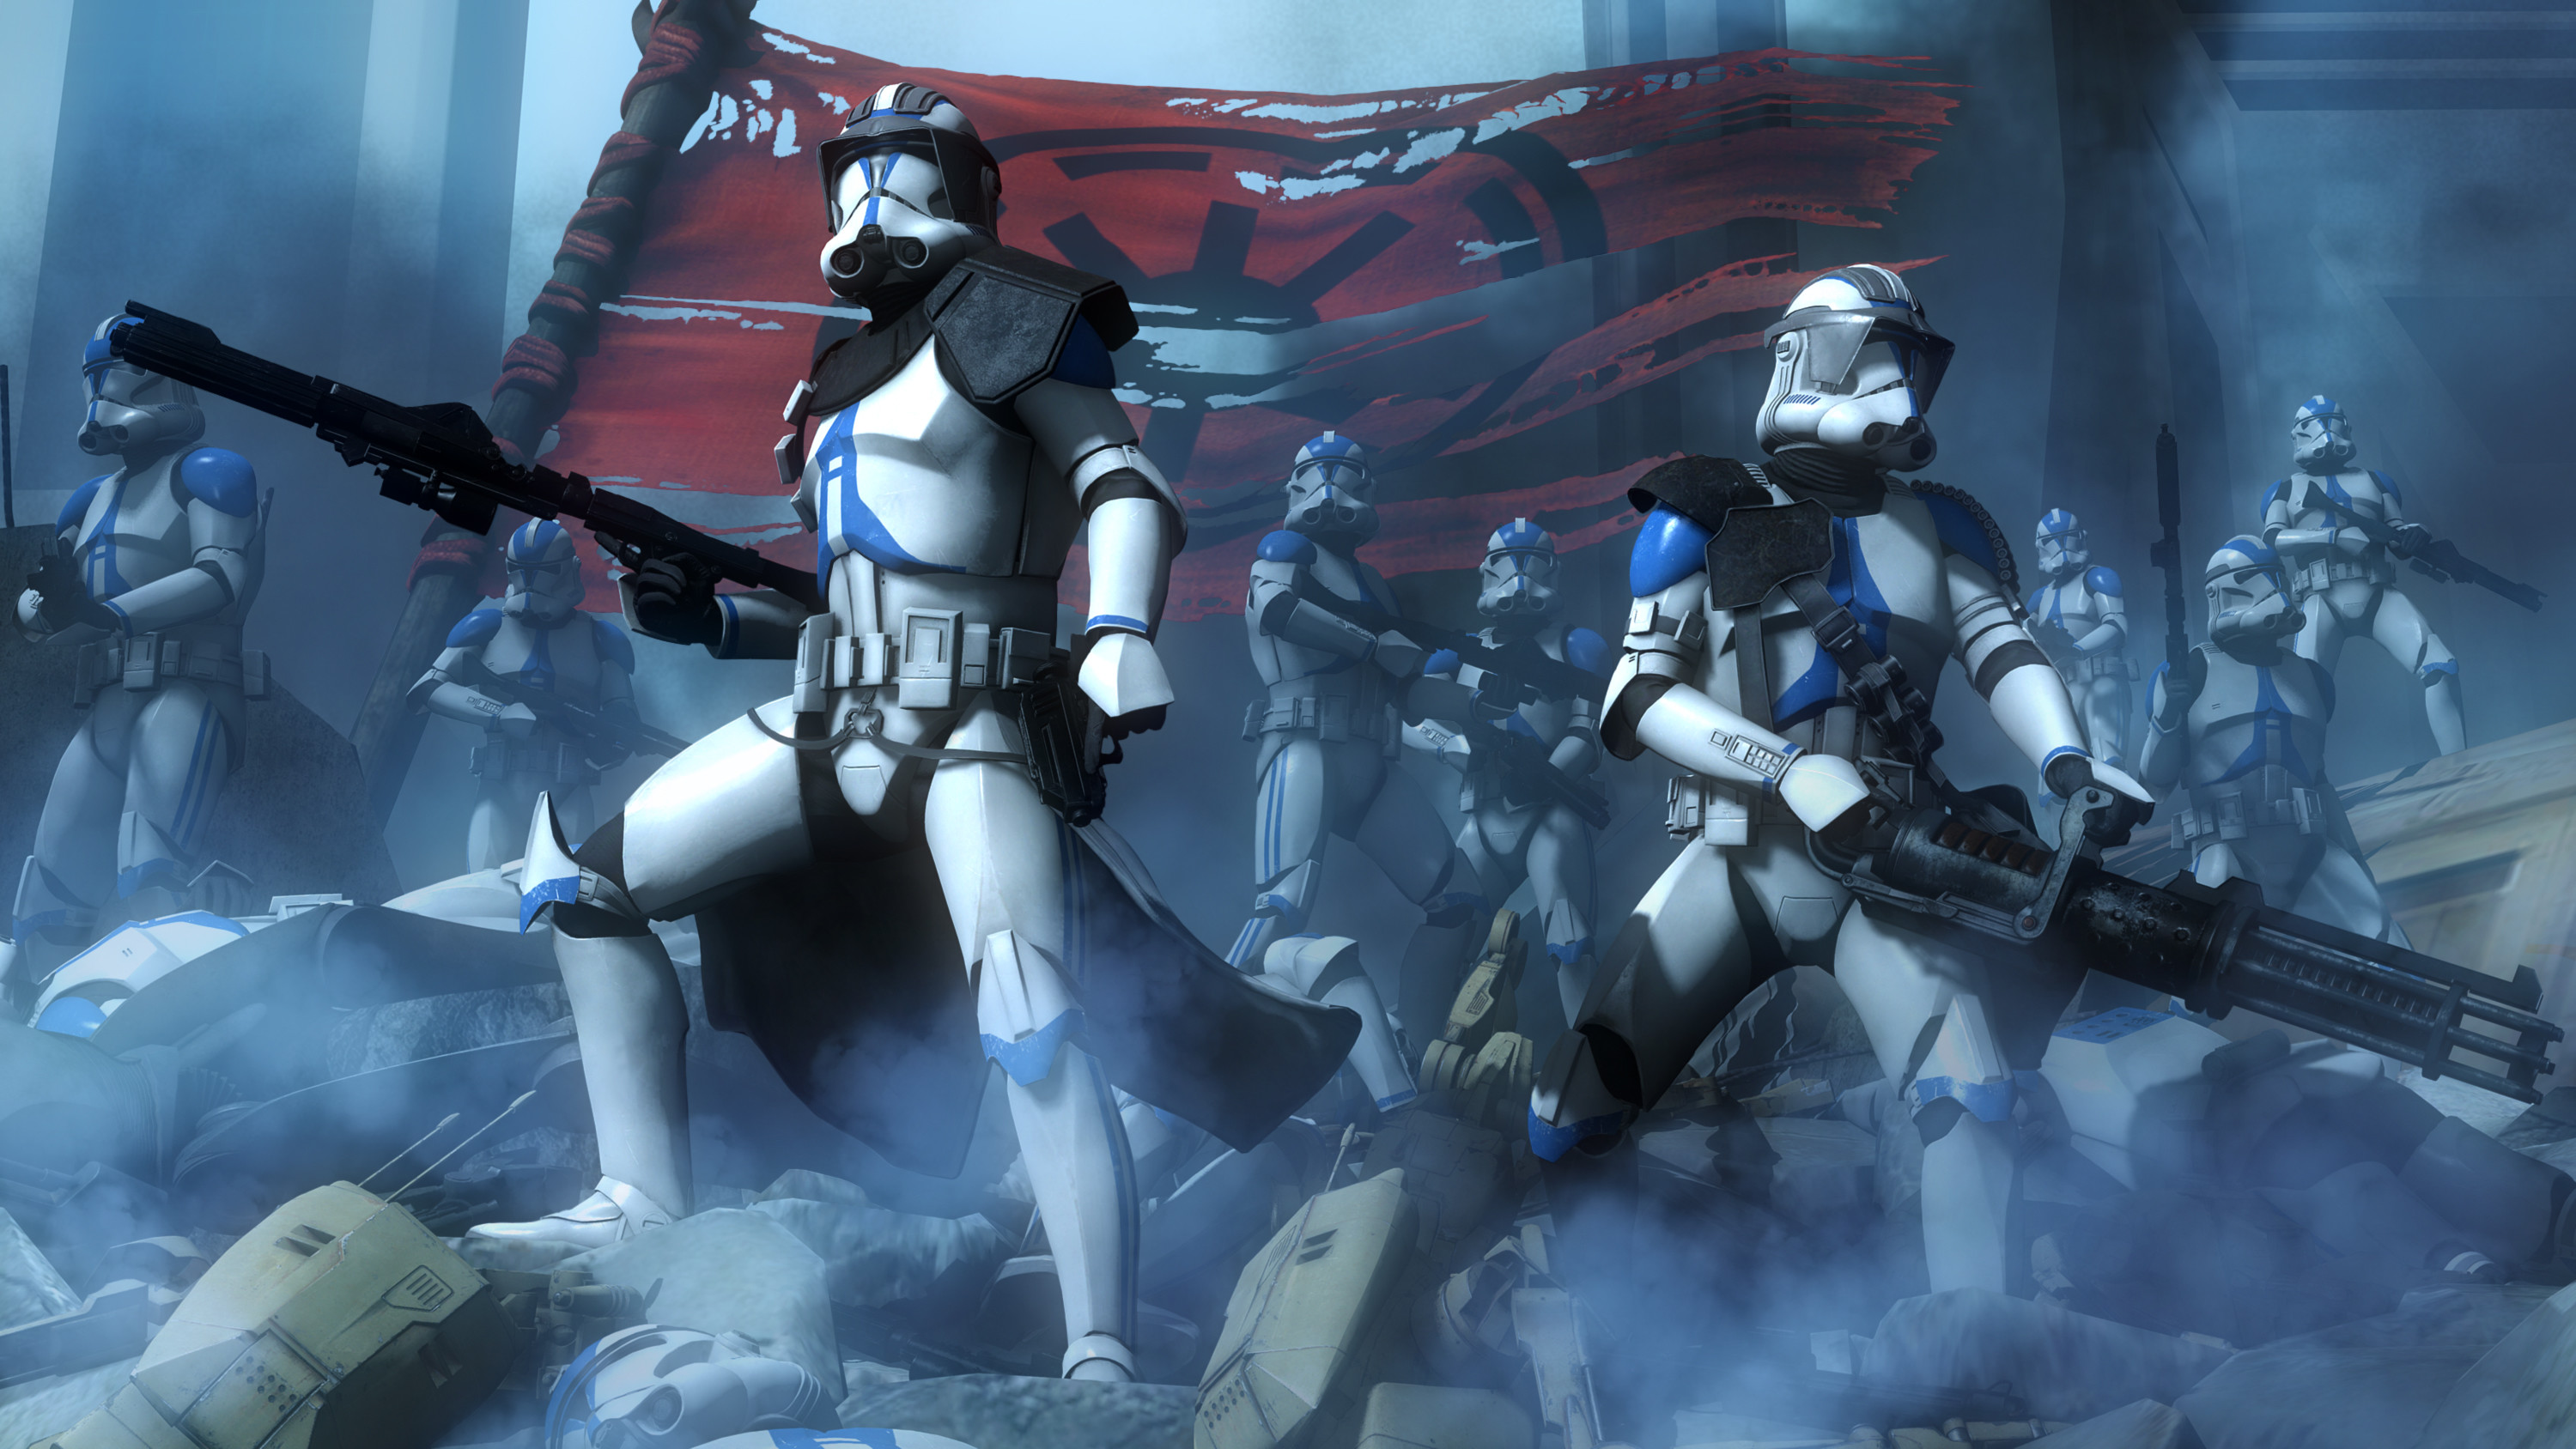 3000x1688 Movie - Star Wars: The Clone Wars Star Wars Scout Trooper Weapon Wallpaper